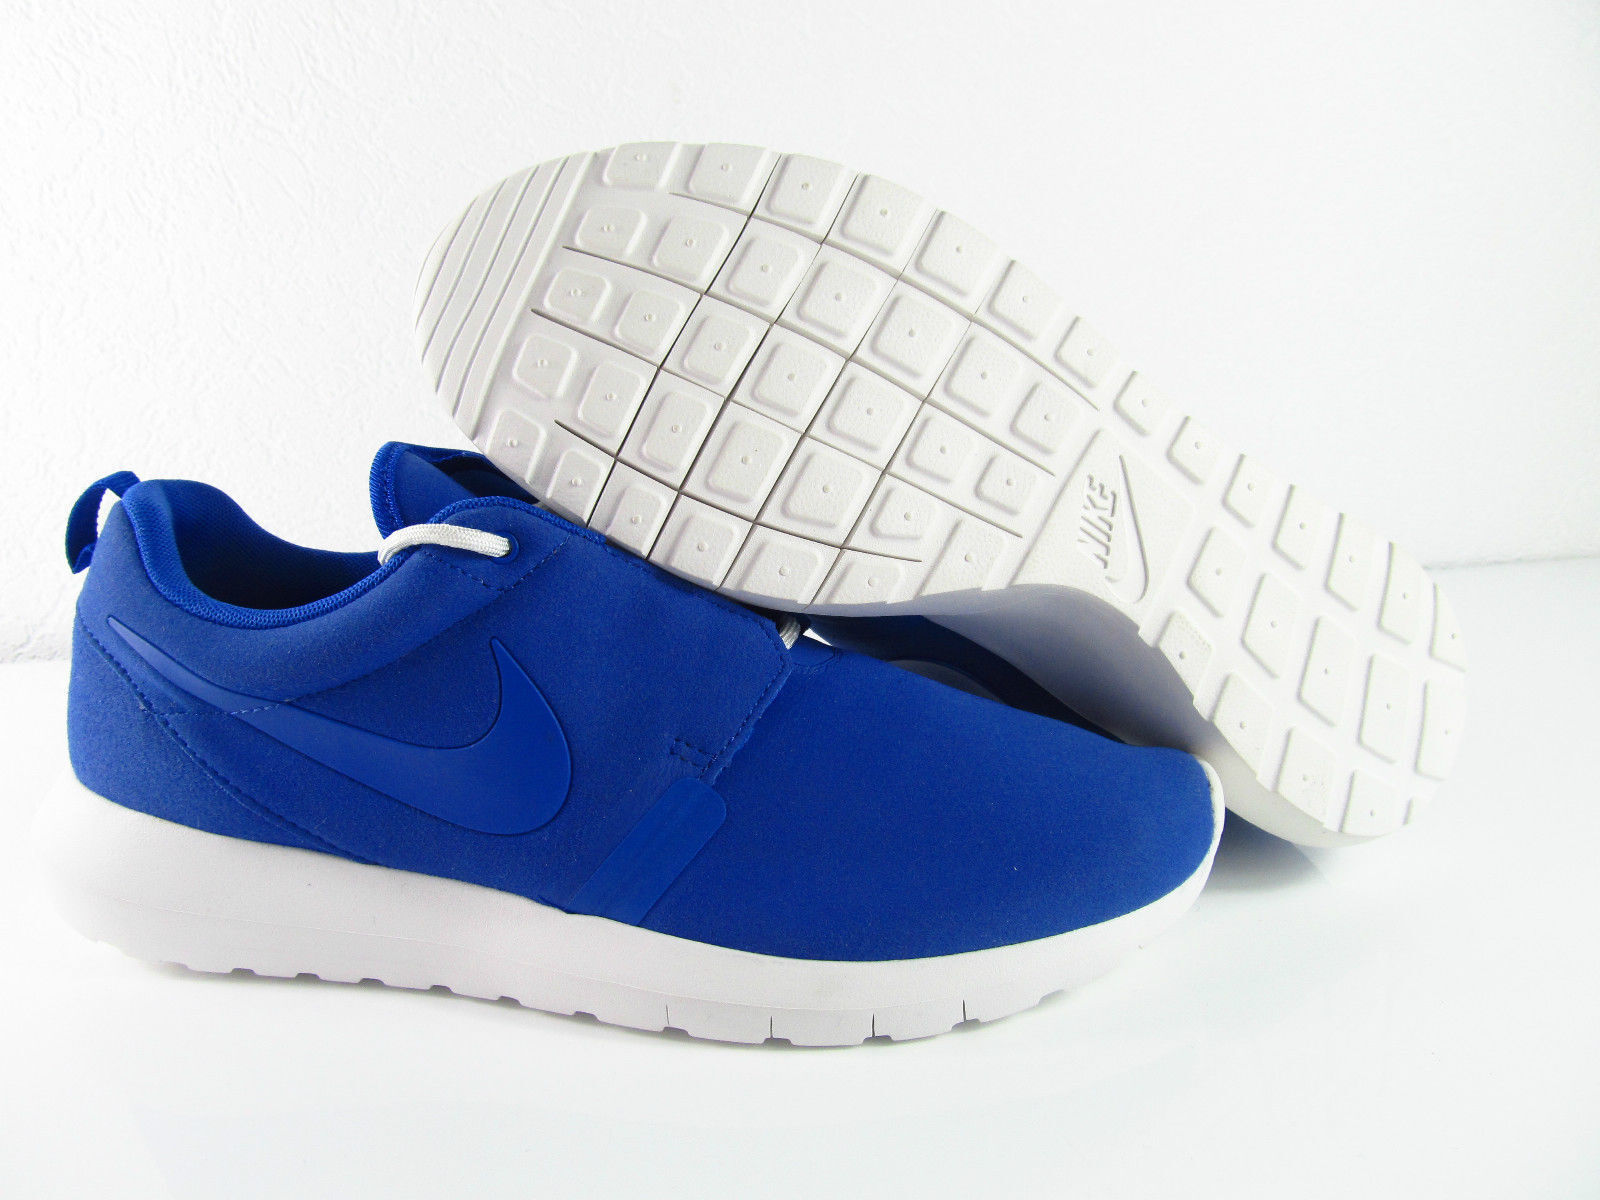 The latest discount shoes for men and women Nike Rosherun Roshe NM Running Game Royal Blue Blau UK_5.5 7 US_6 8 Eur 38.5 41